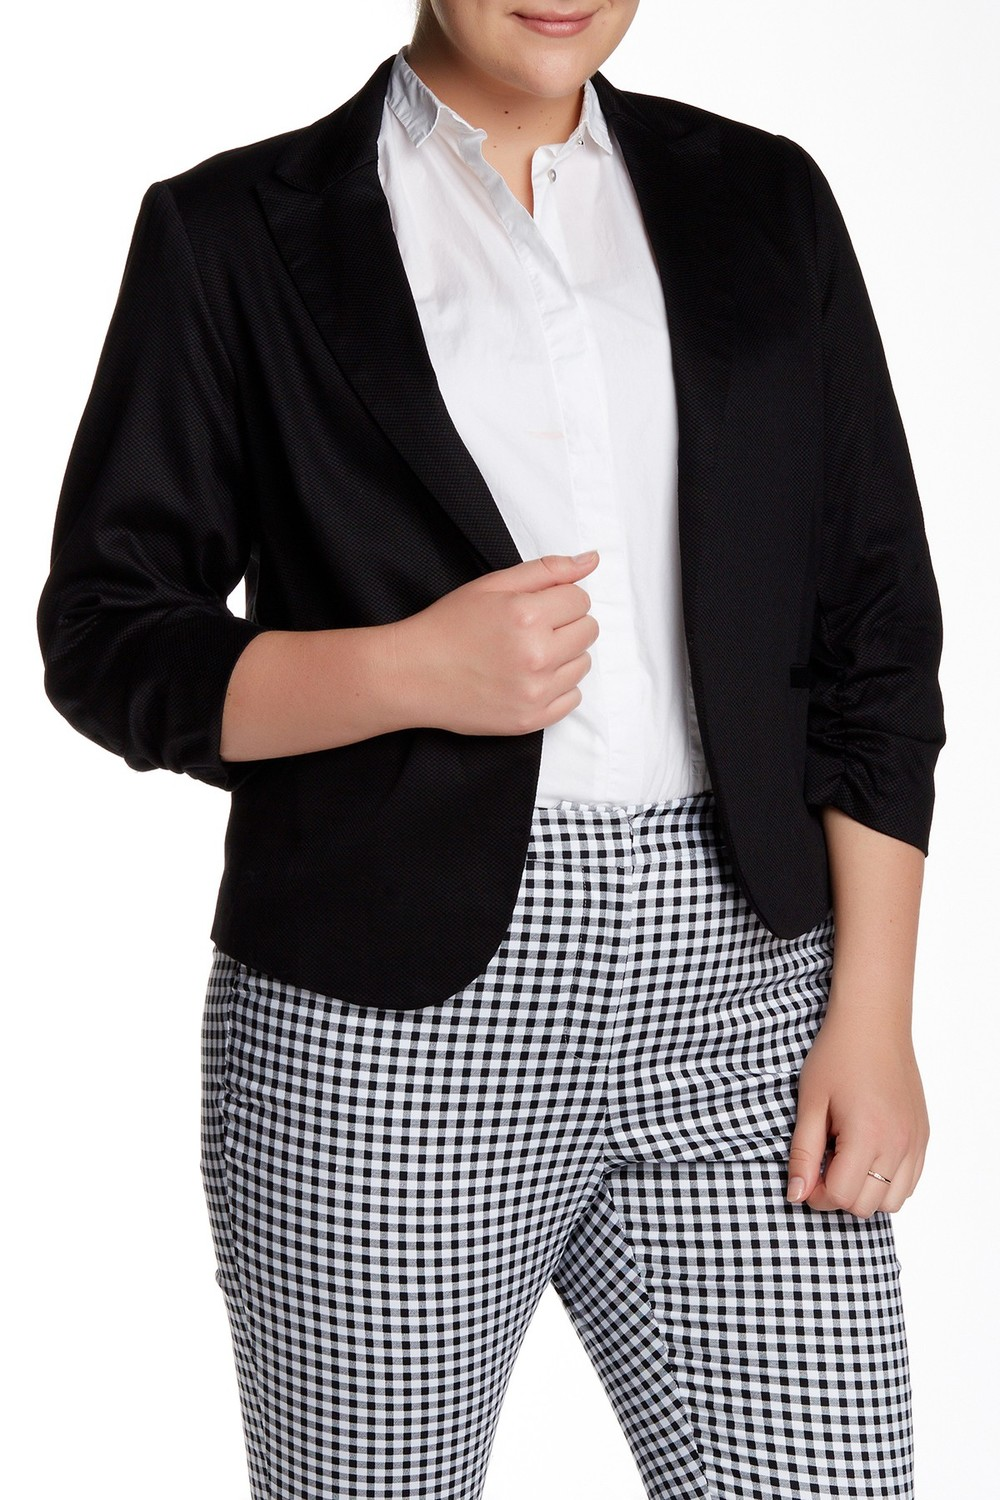 Amanda & Chelsea Ruched Sleeve Jacket. Nordstrom Rack. Was: $180 Now: $64.(cotton)